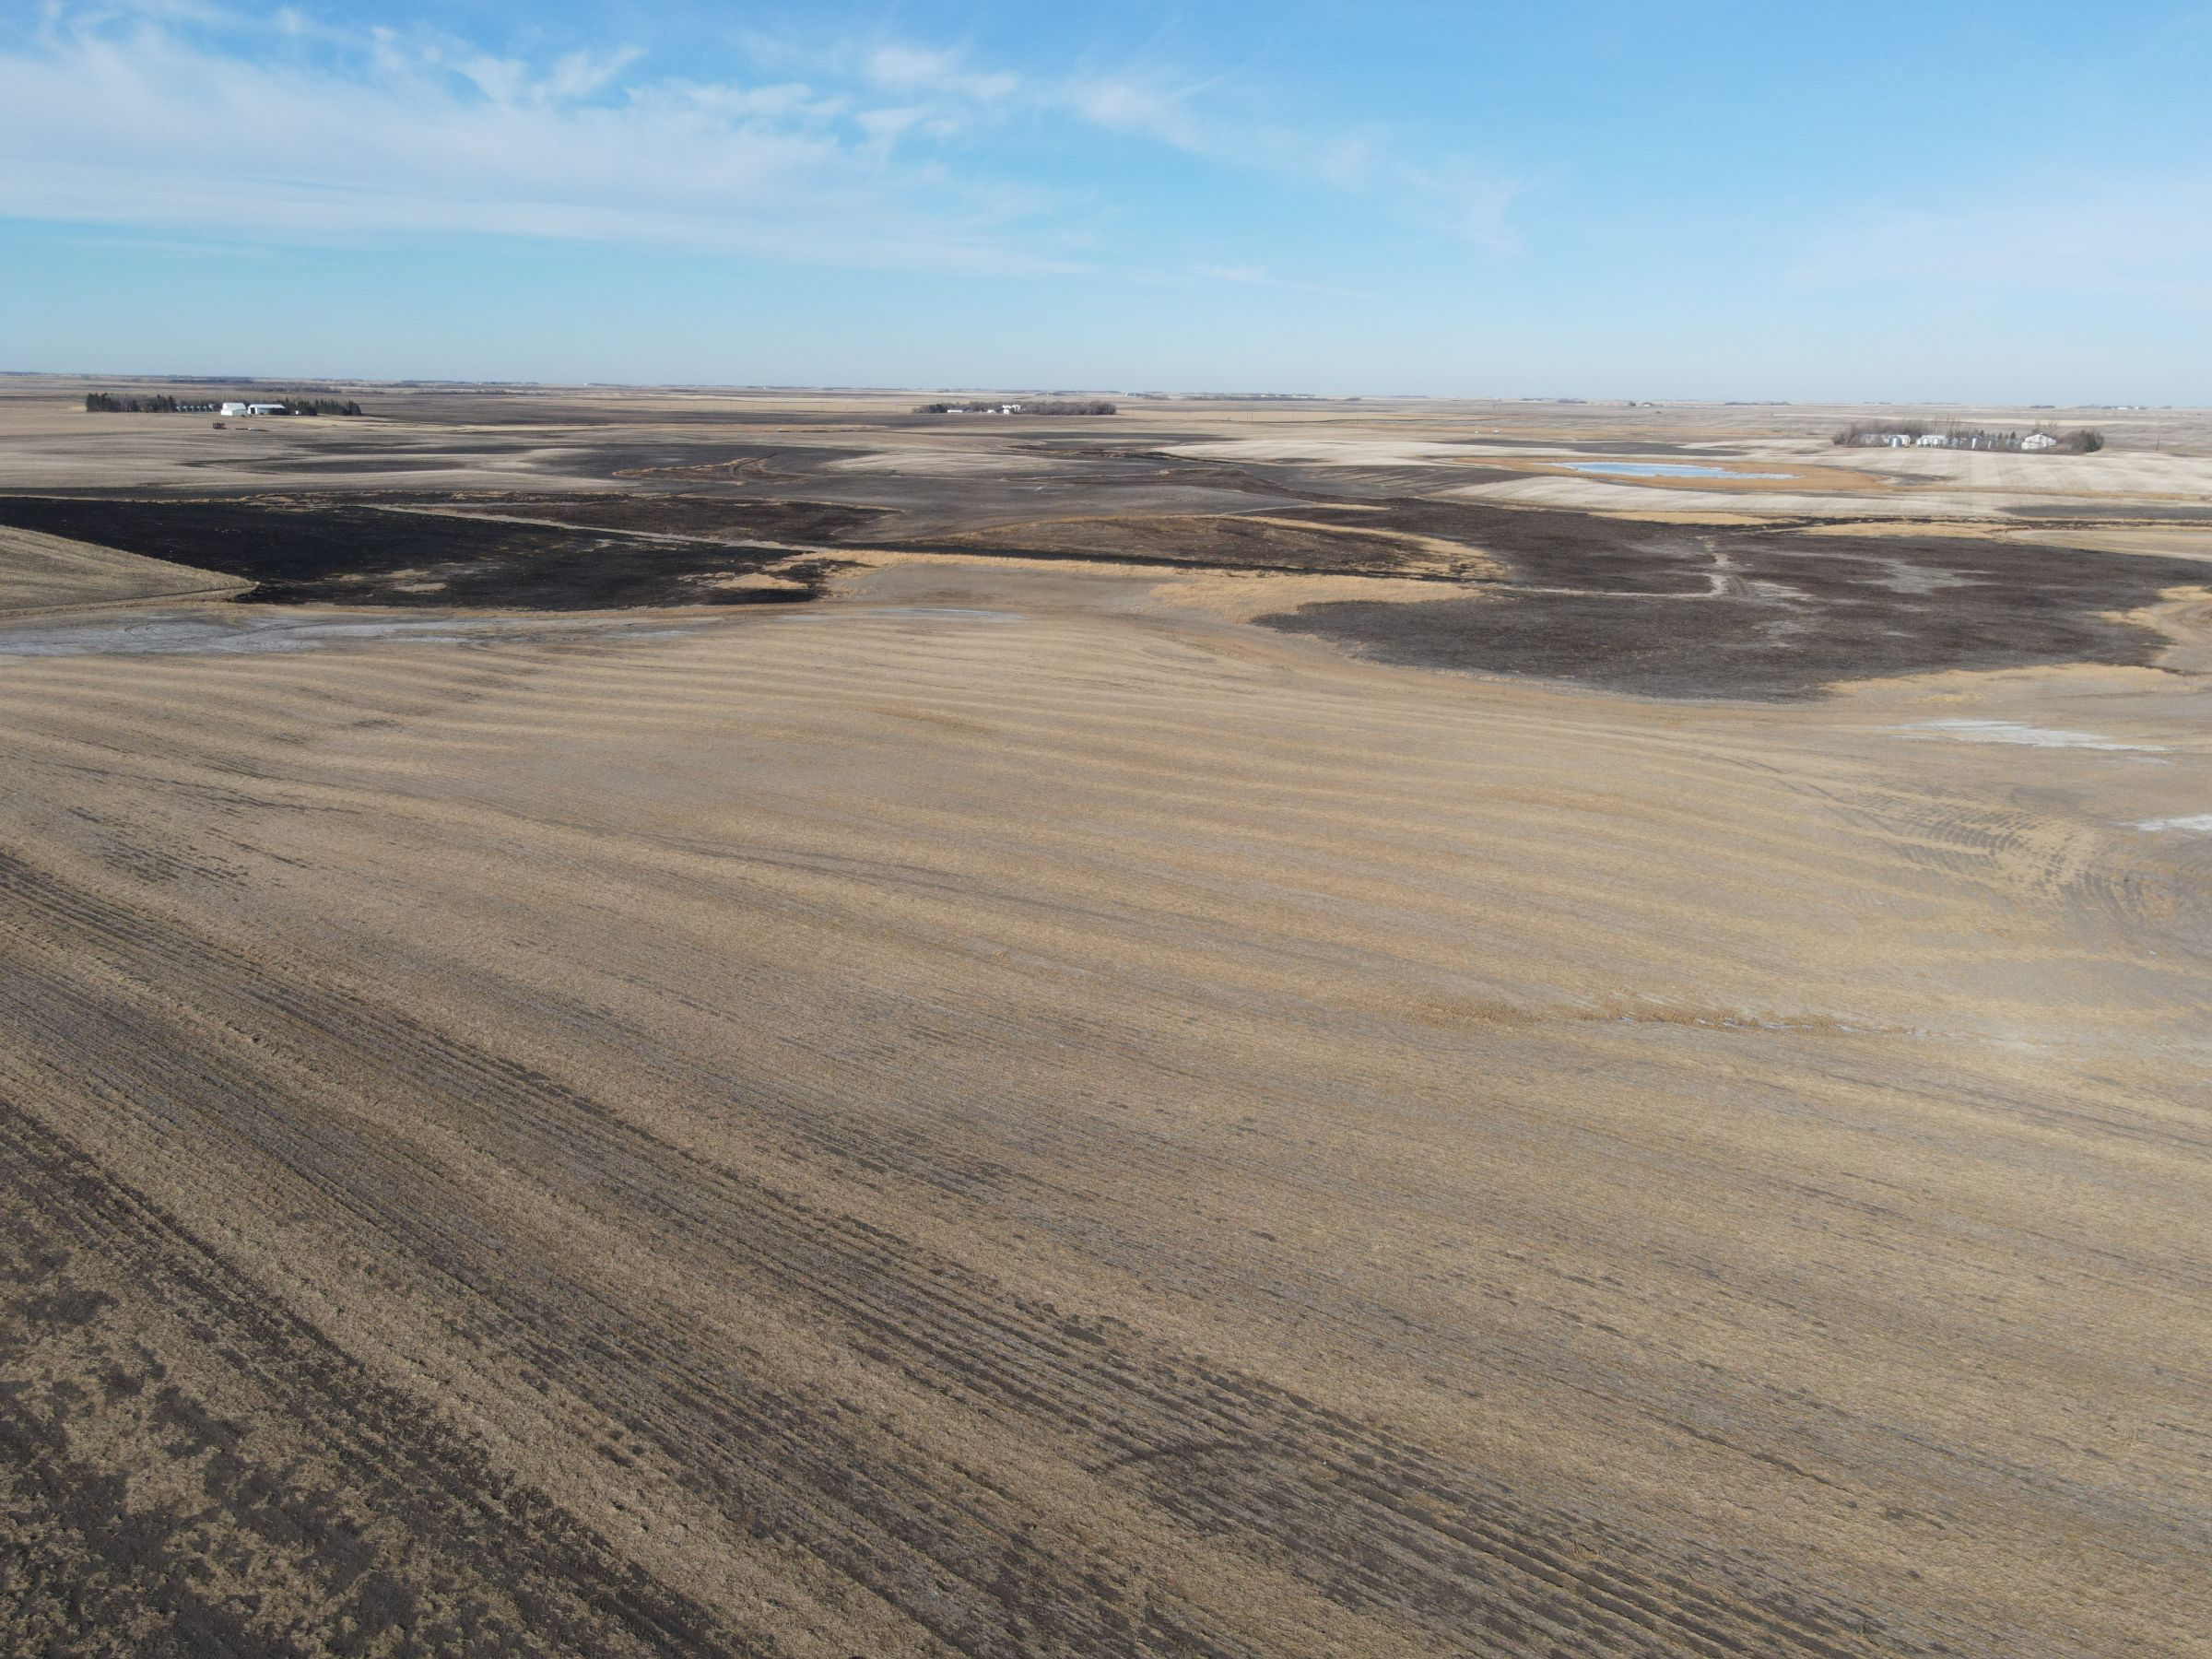 land-ramsey-county-north-dakota-157-acres-listing-number-15291-2-2020-12-11-153831.JPG